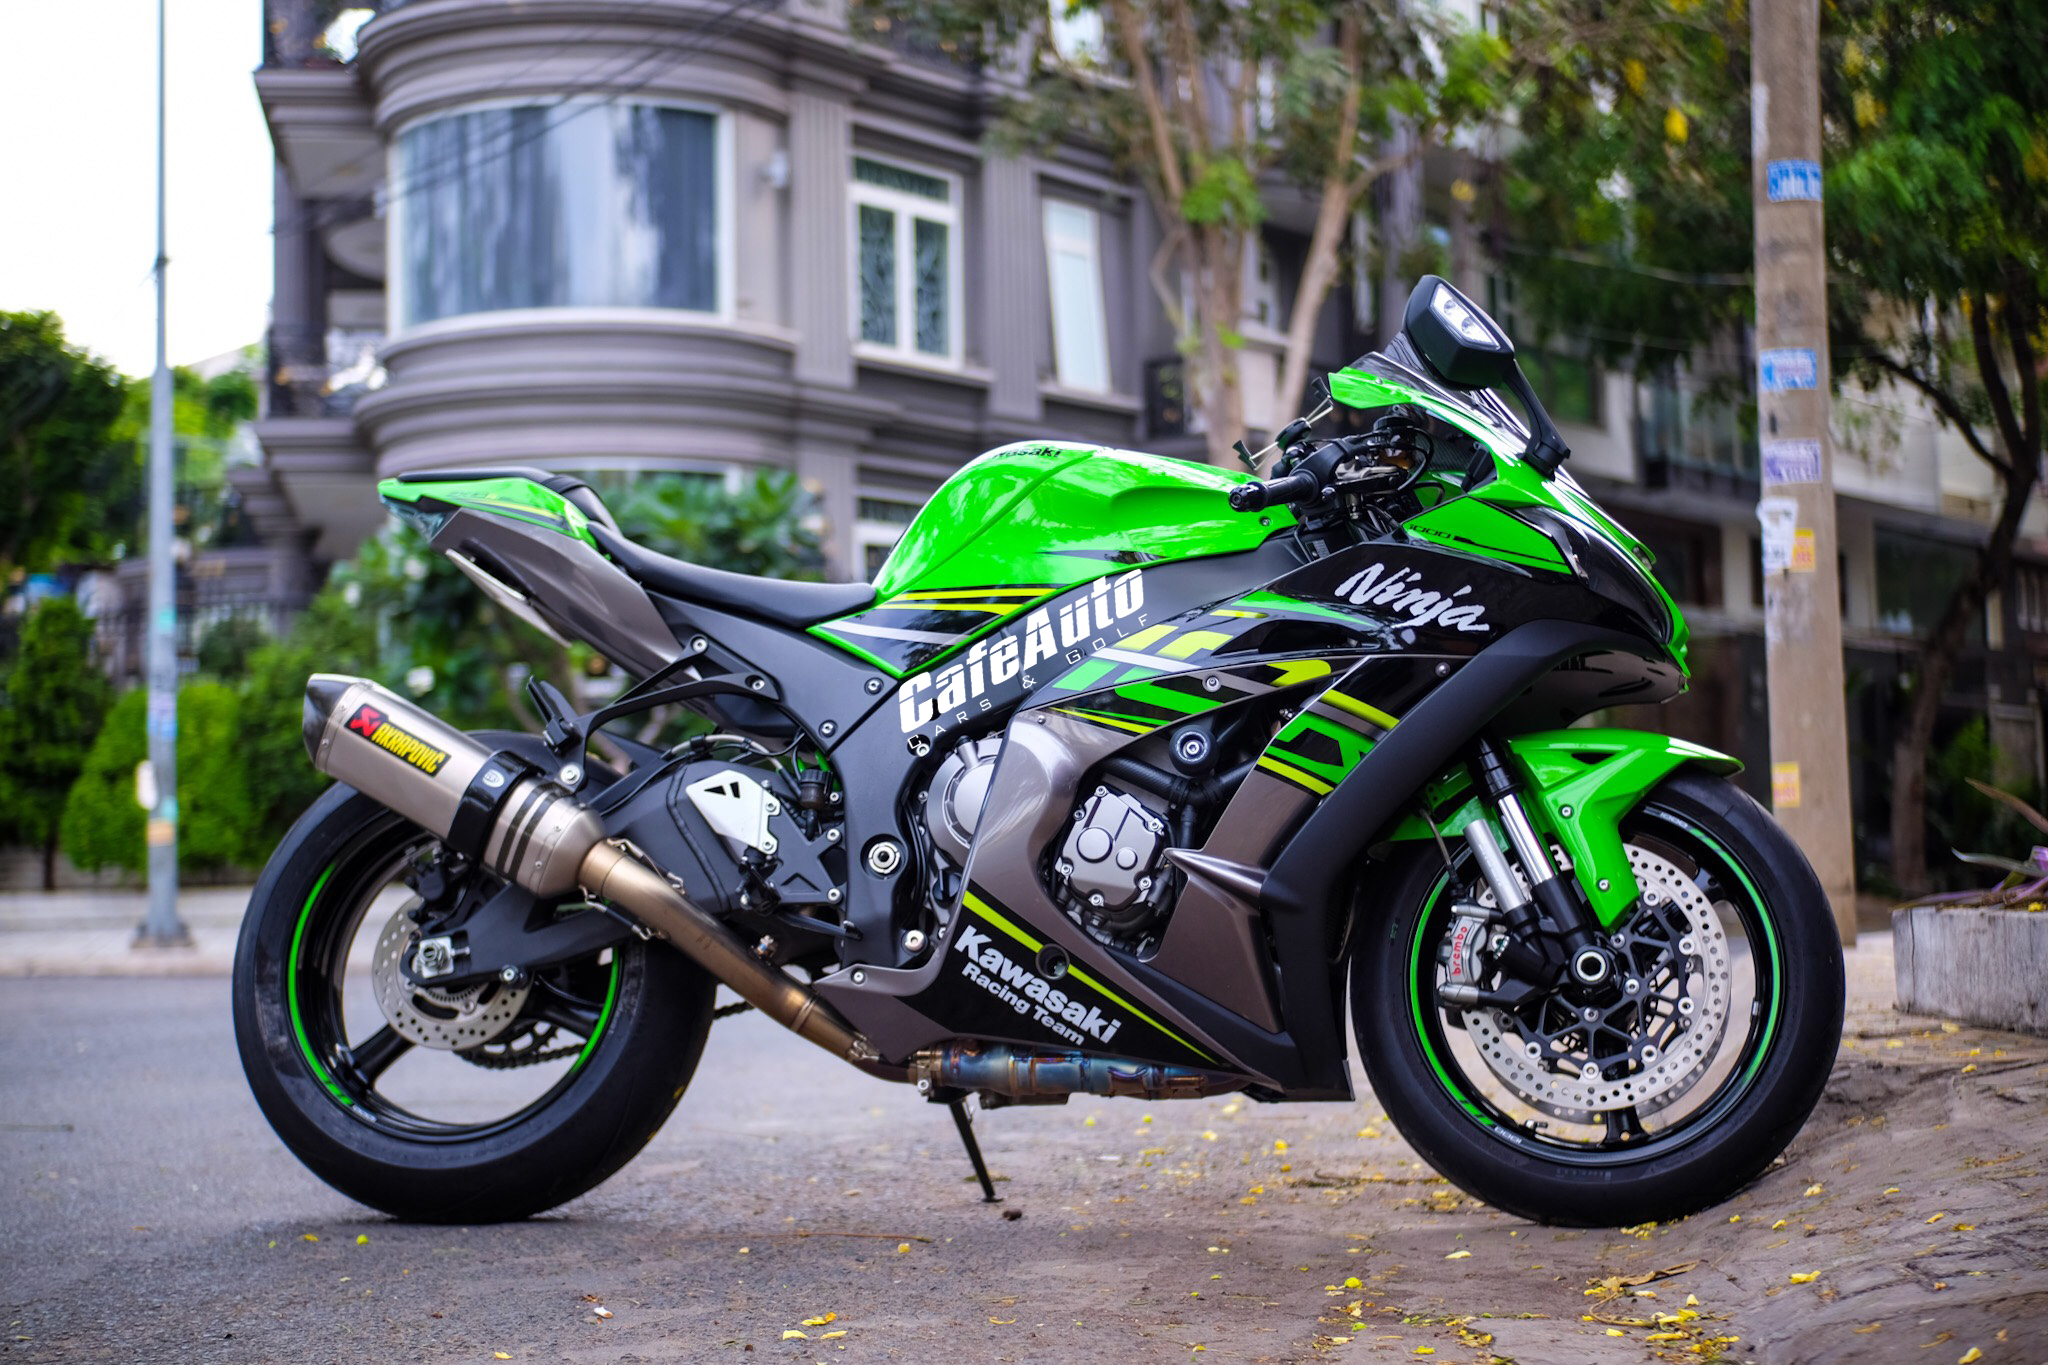 ZX10R-cafeautovn-3